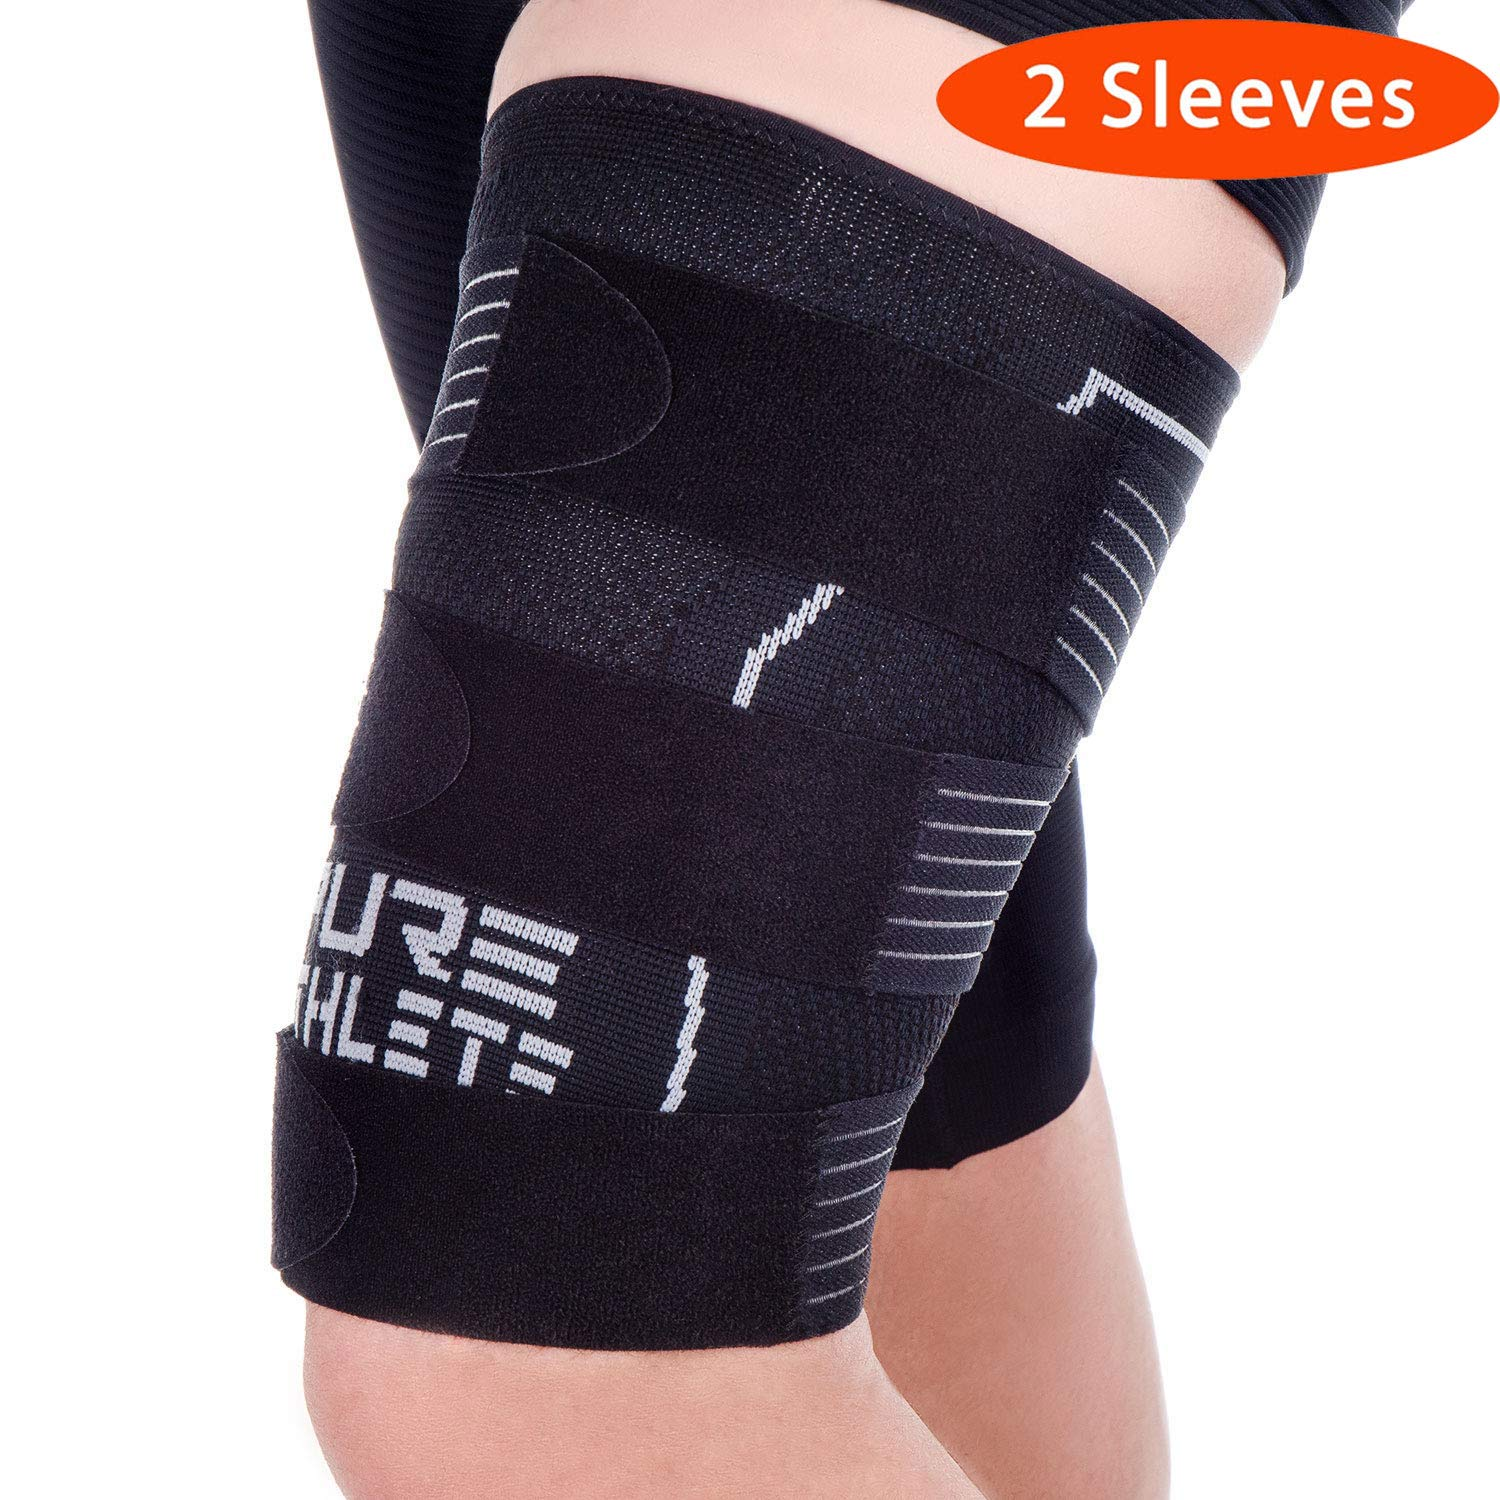 Pure Athlete Thigh Compression Sleeve - Adjustable Straps Quad Wrap Support Brace, Hamstring Upper Leg (2 Sleeves - Black, Medium) by Pure Athlete